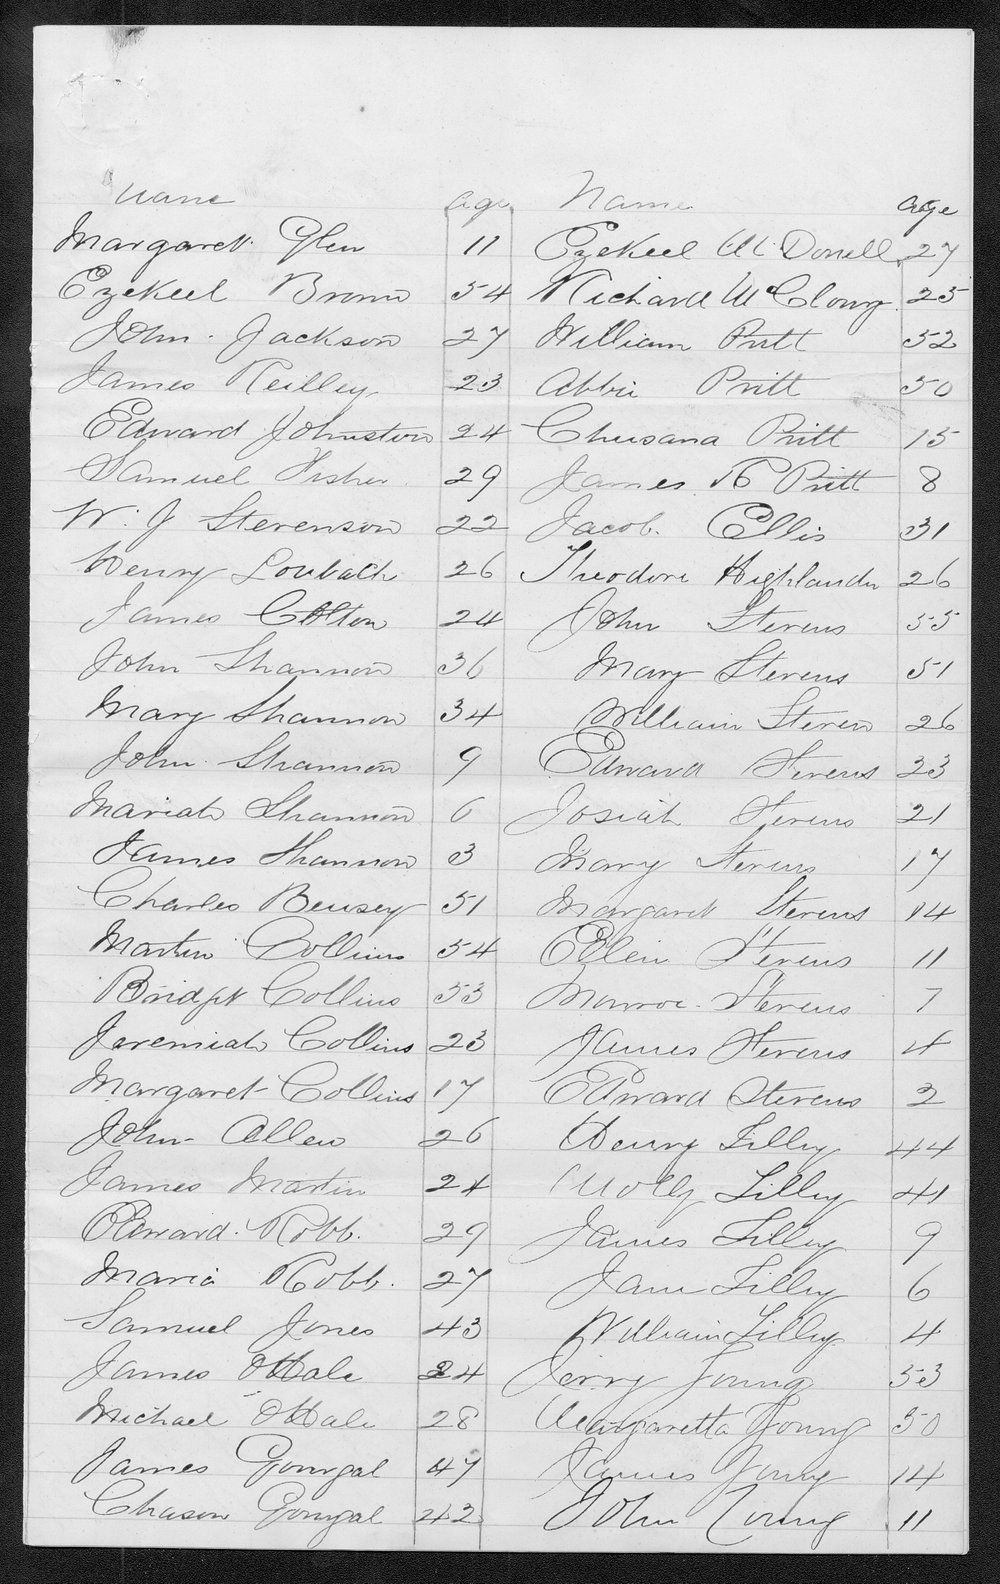 Ness County organization records - 9